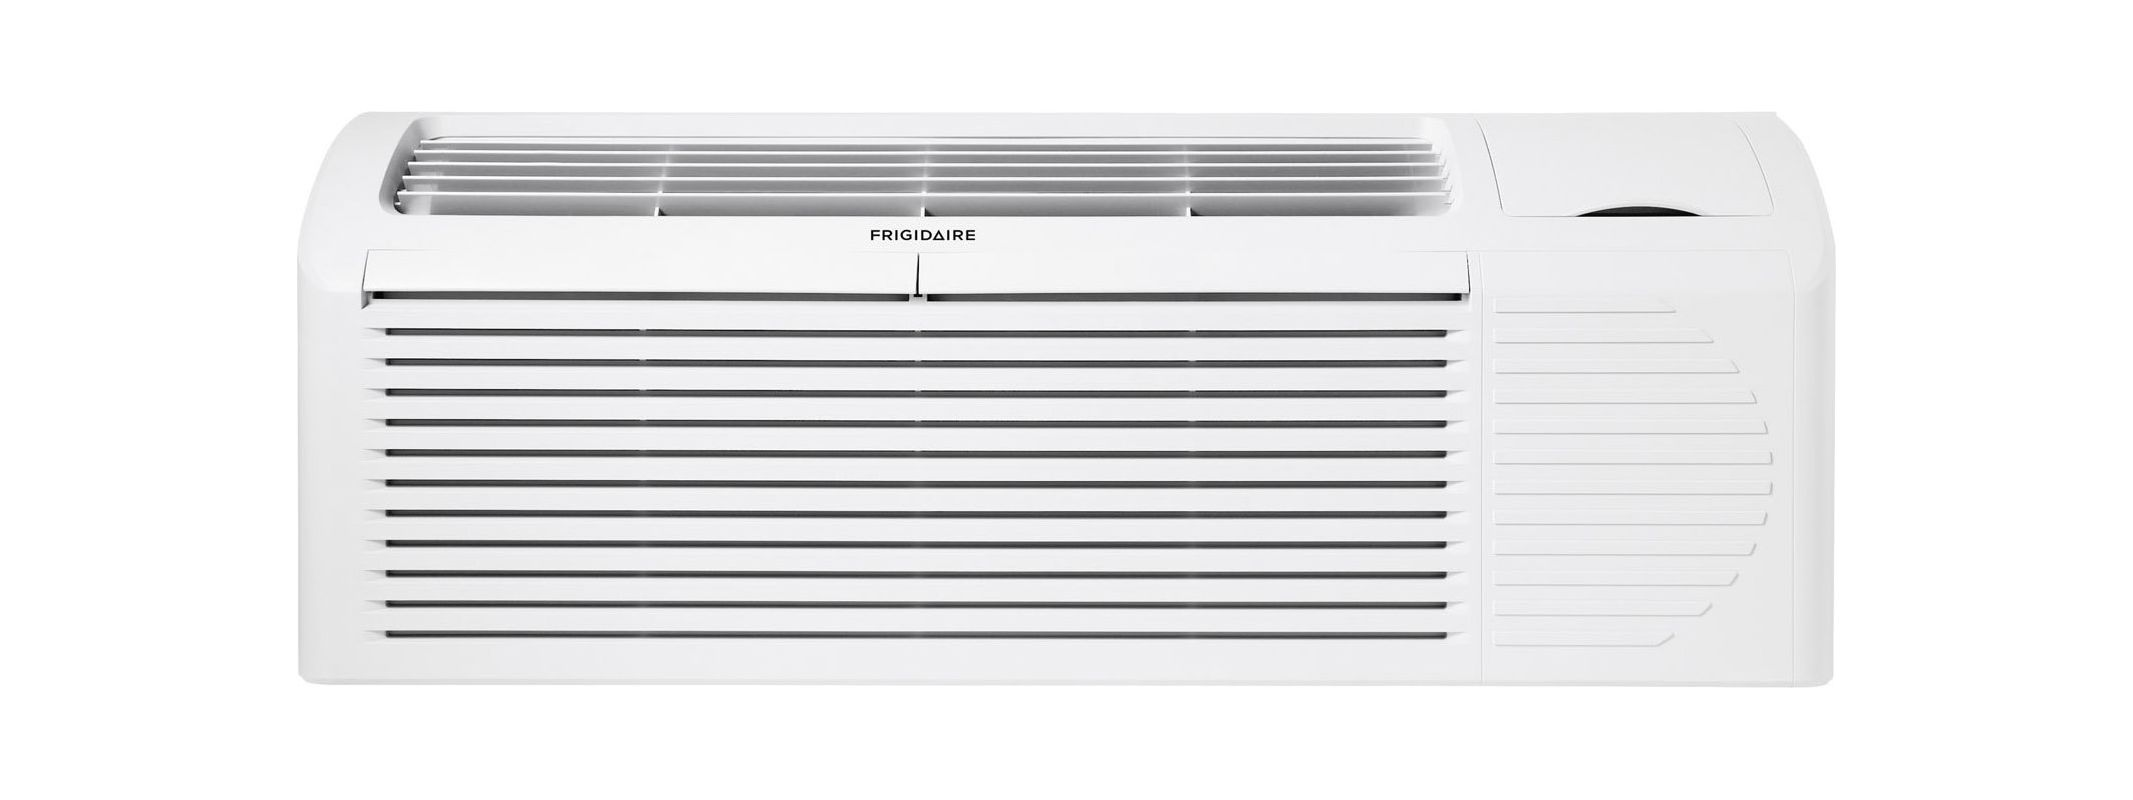 window mounted mini compact air conditioner/heater.Type forced air #61616A